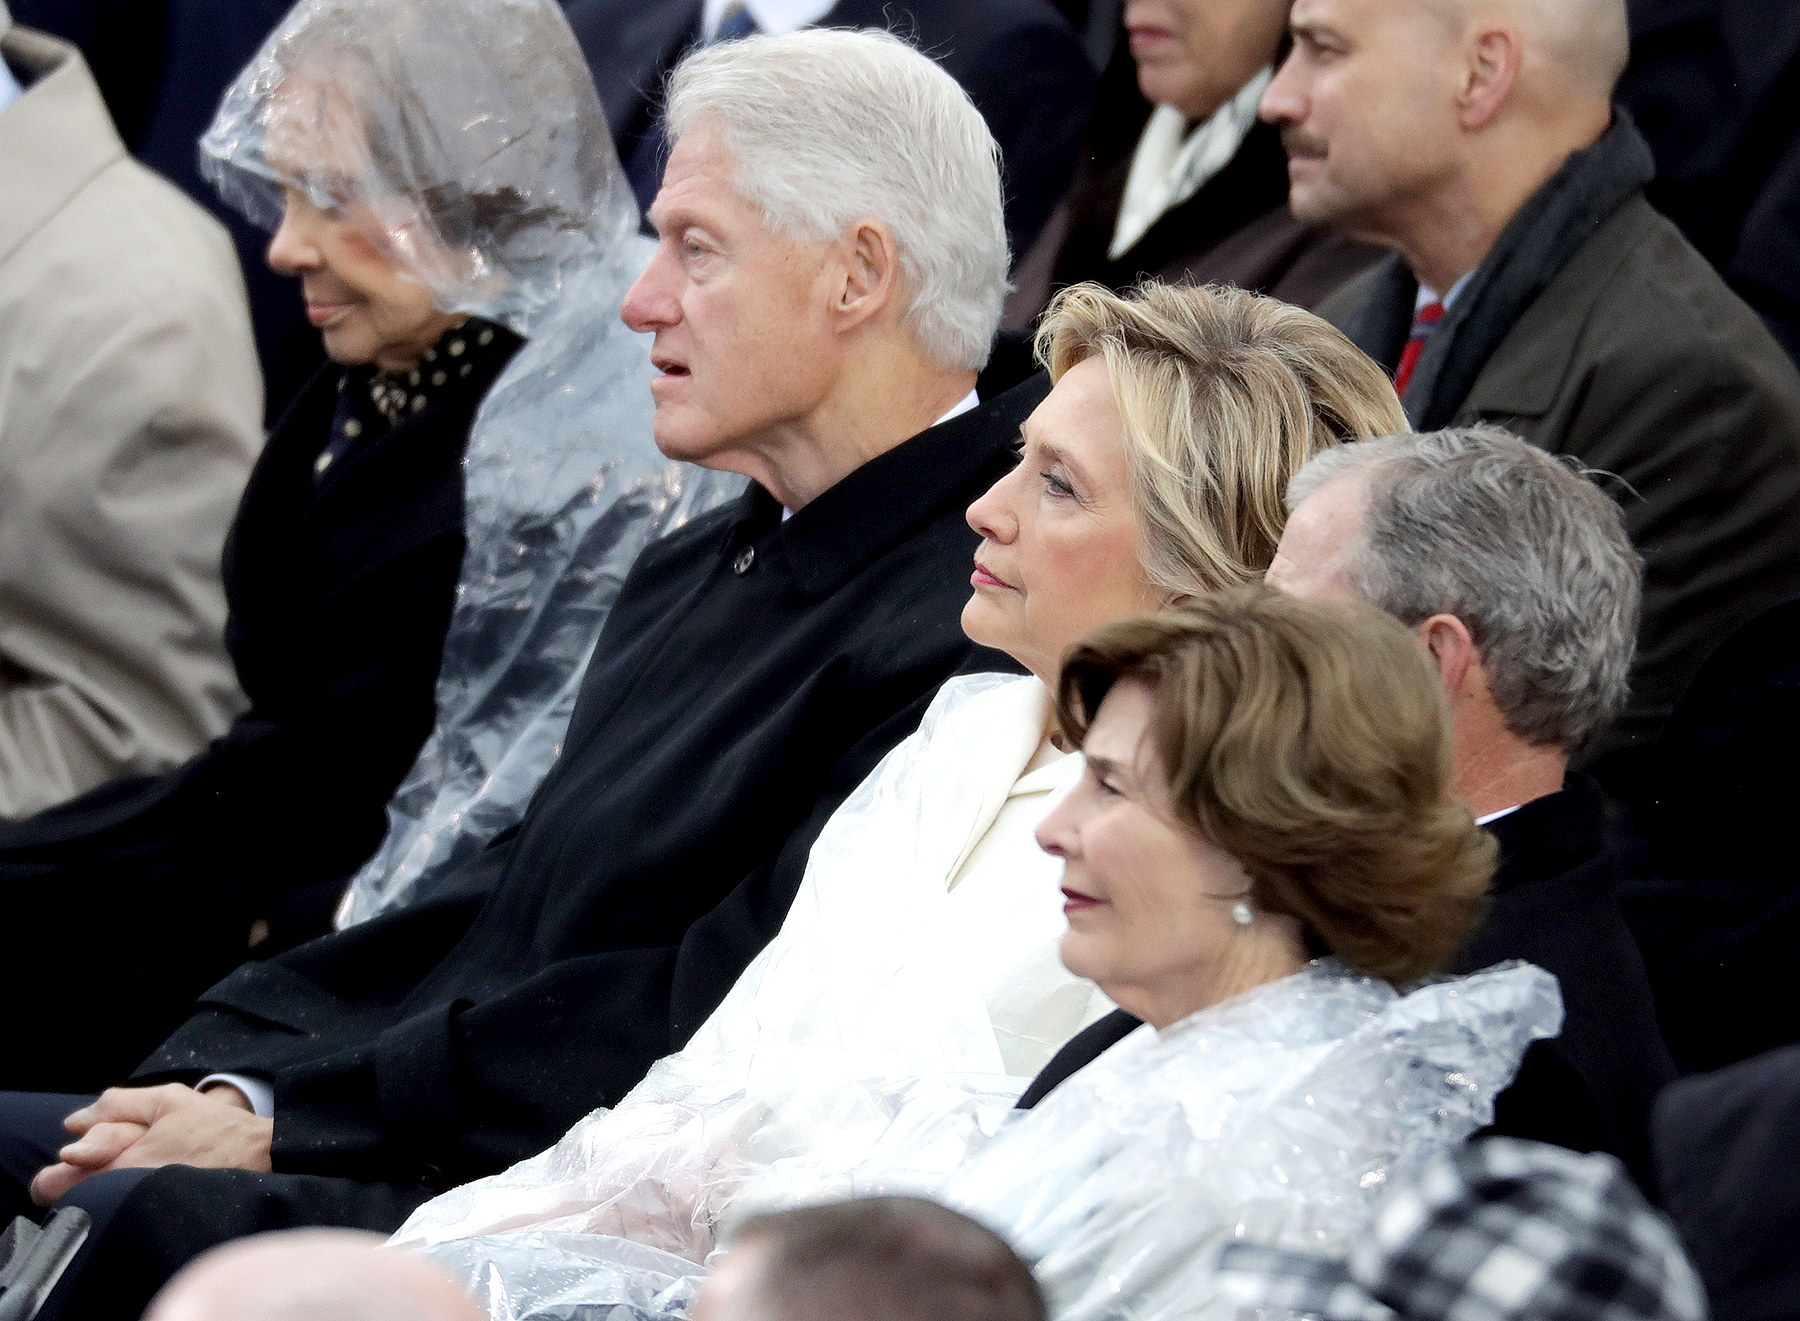 Former President Jimmy Carter, former first lady Rosalynn Carter, former President Bill Clinton, former Democratic presidential nominee Hillary Clinton, former President George W. Bush and former first lady Laura Bush watch President Donald Trump's inaugural address on the West Front of the U.S. Capitol on January 20, 2017 in Washington, DC.